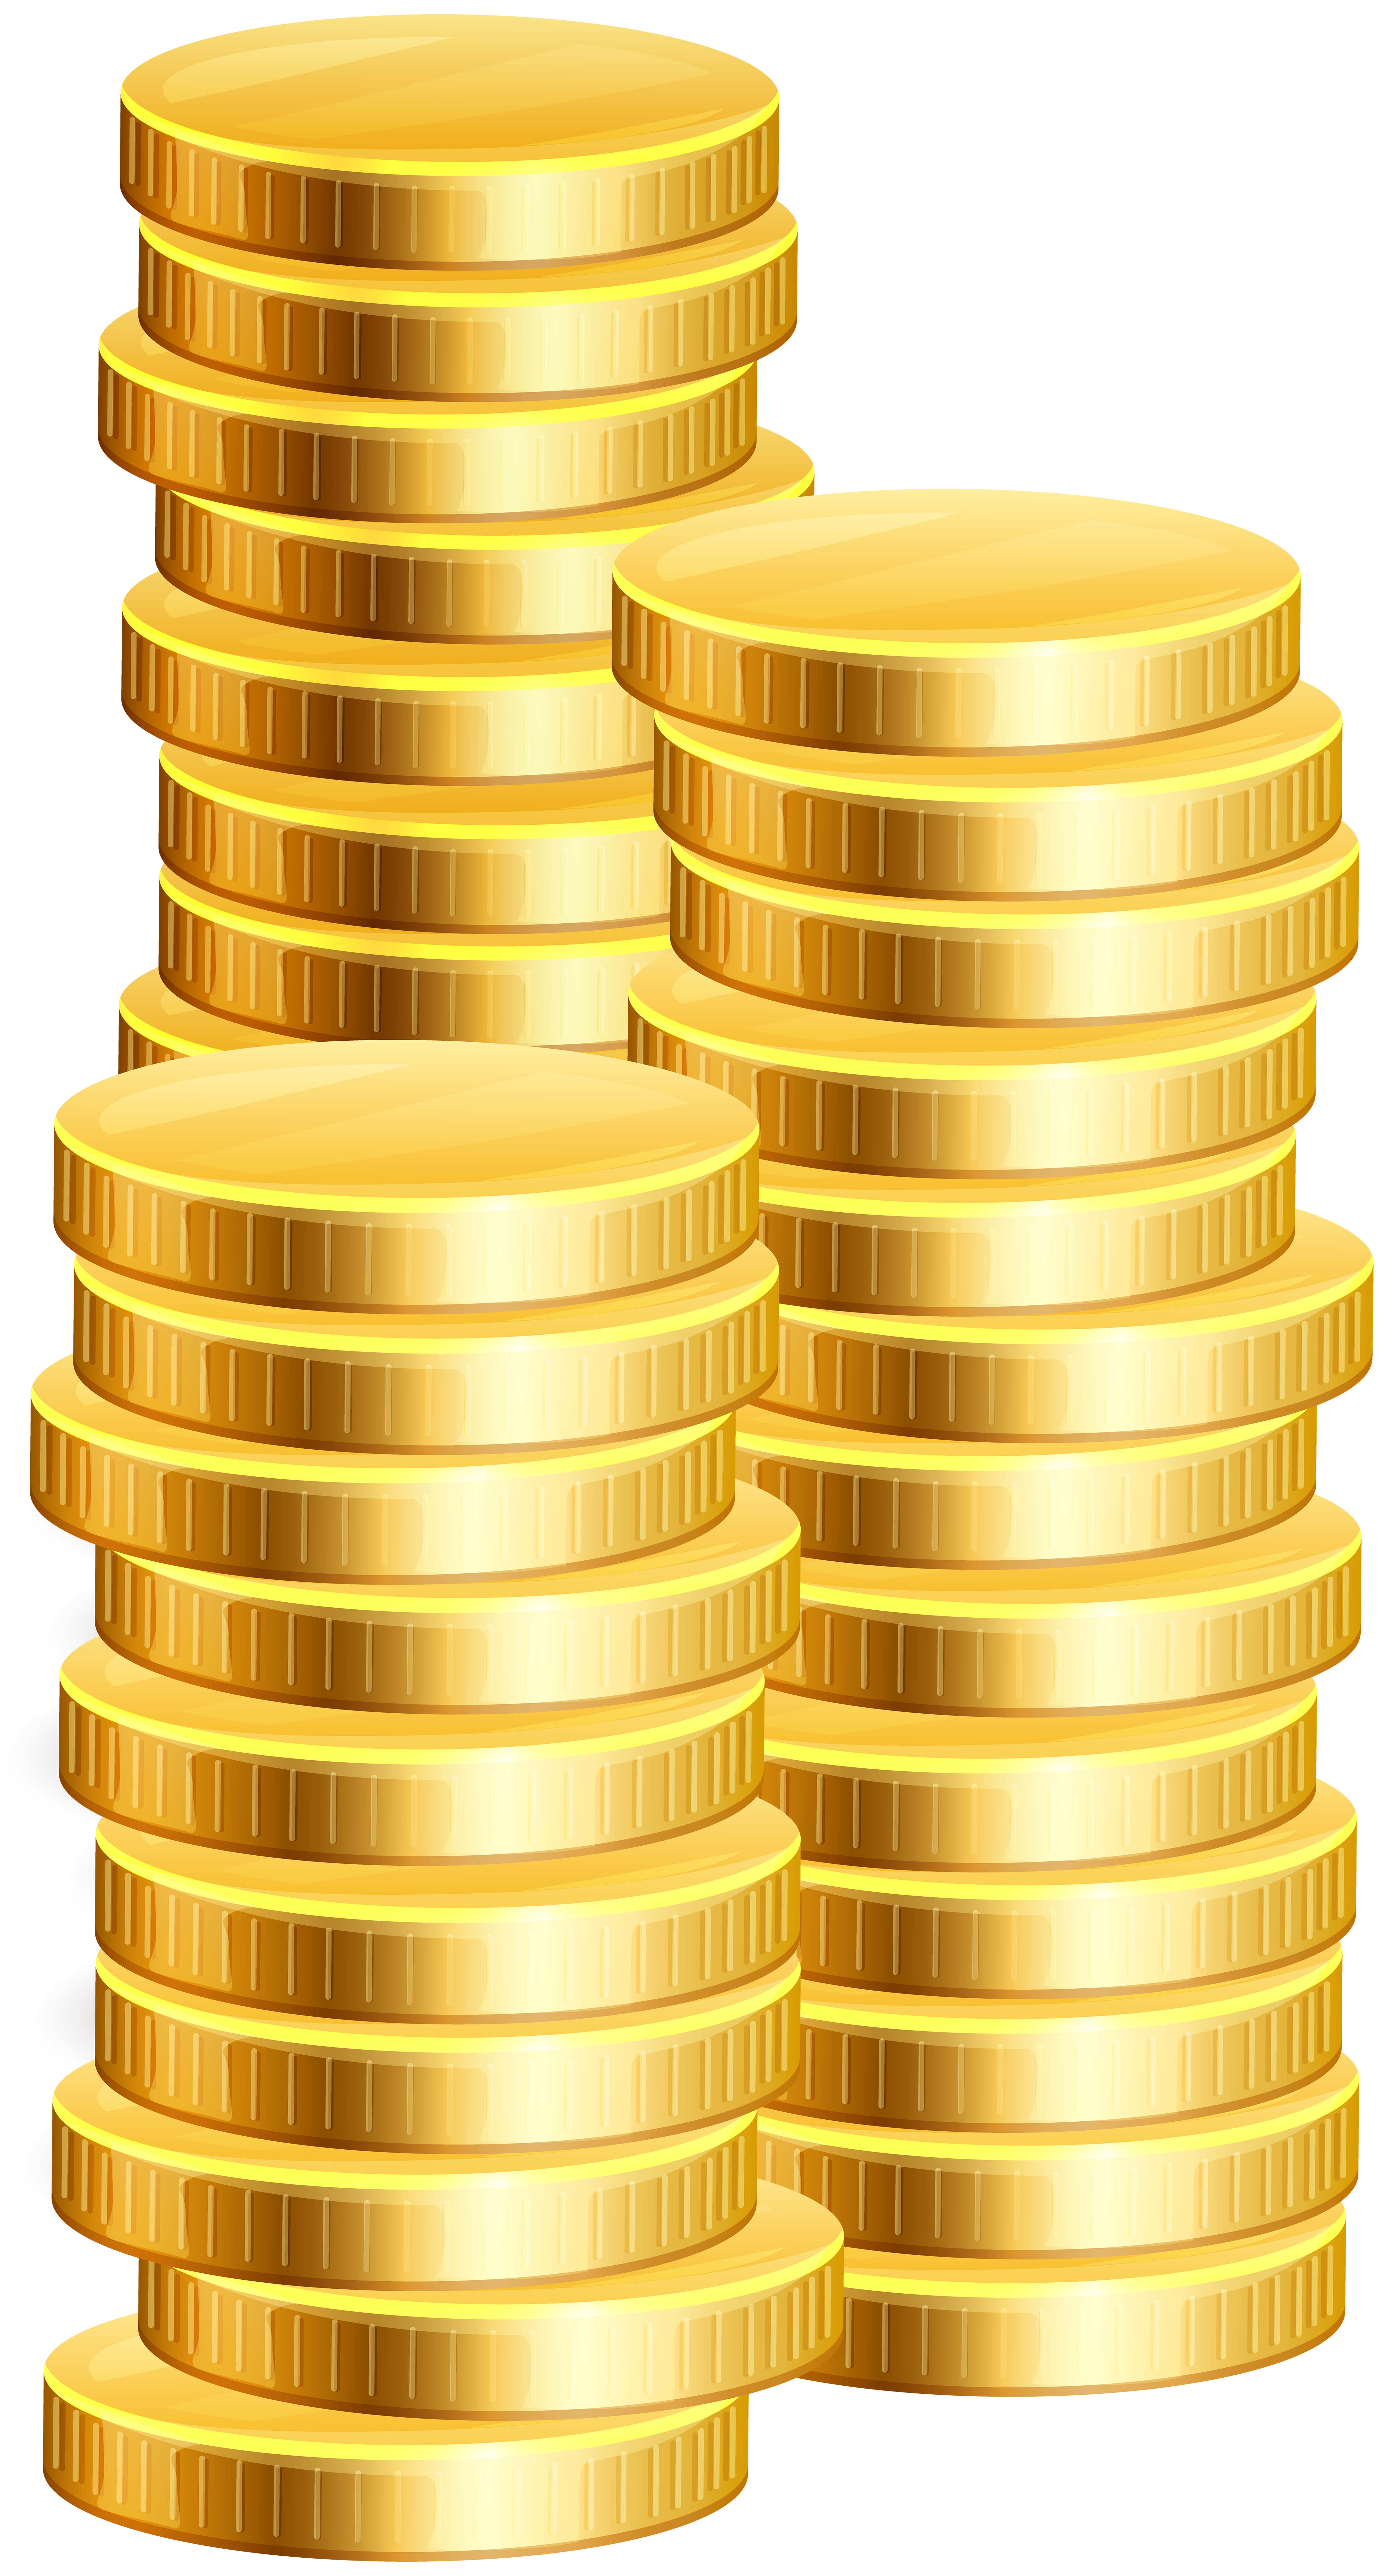 Clipart money gold picture black and white download Coins PNG Clip Art - Best WEB Clipart picture black and white download